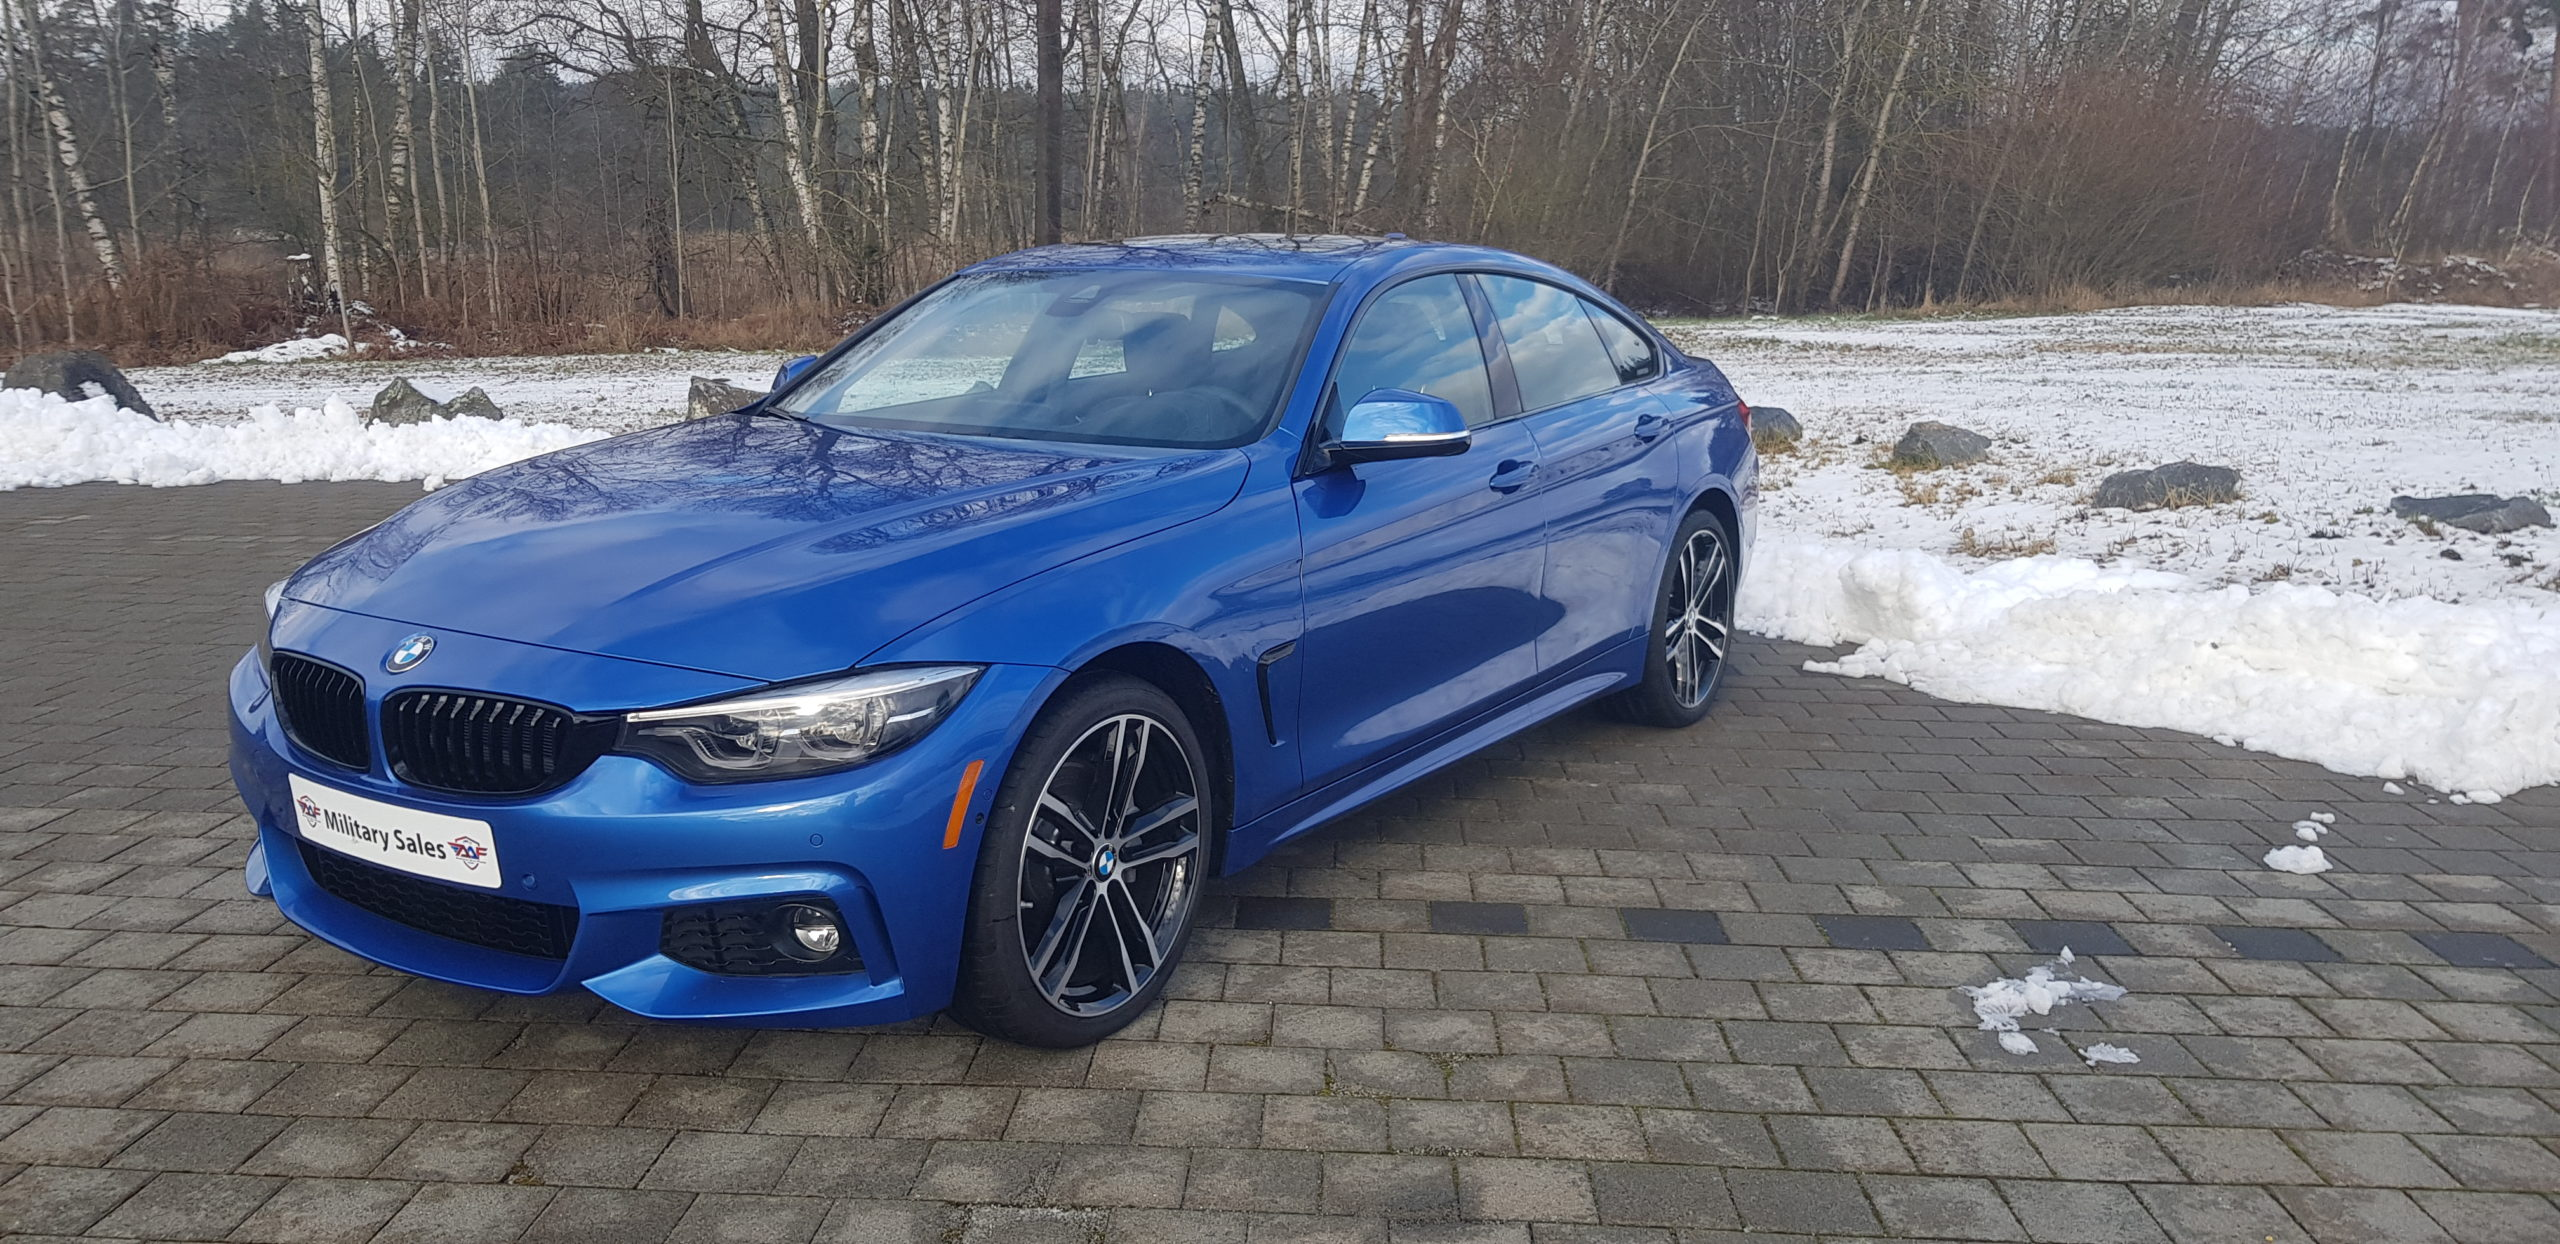 2020 BMW 430i xDrive Gran Coupe</br>as low as </br>$309 per paycheck